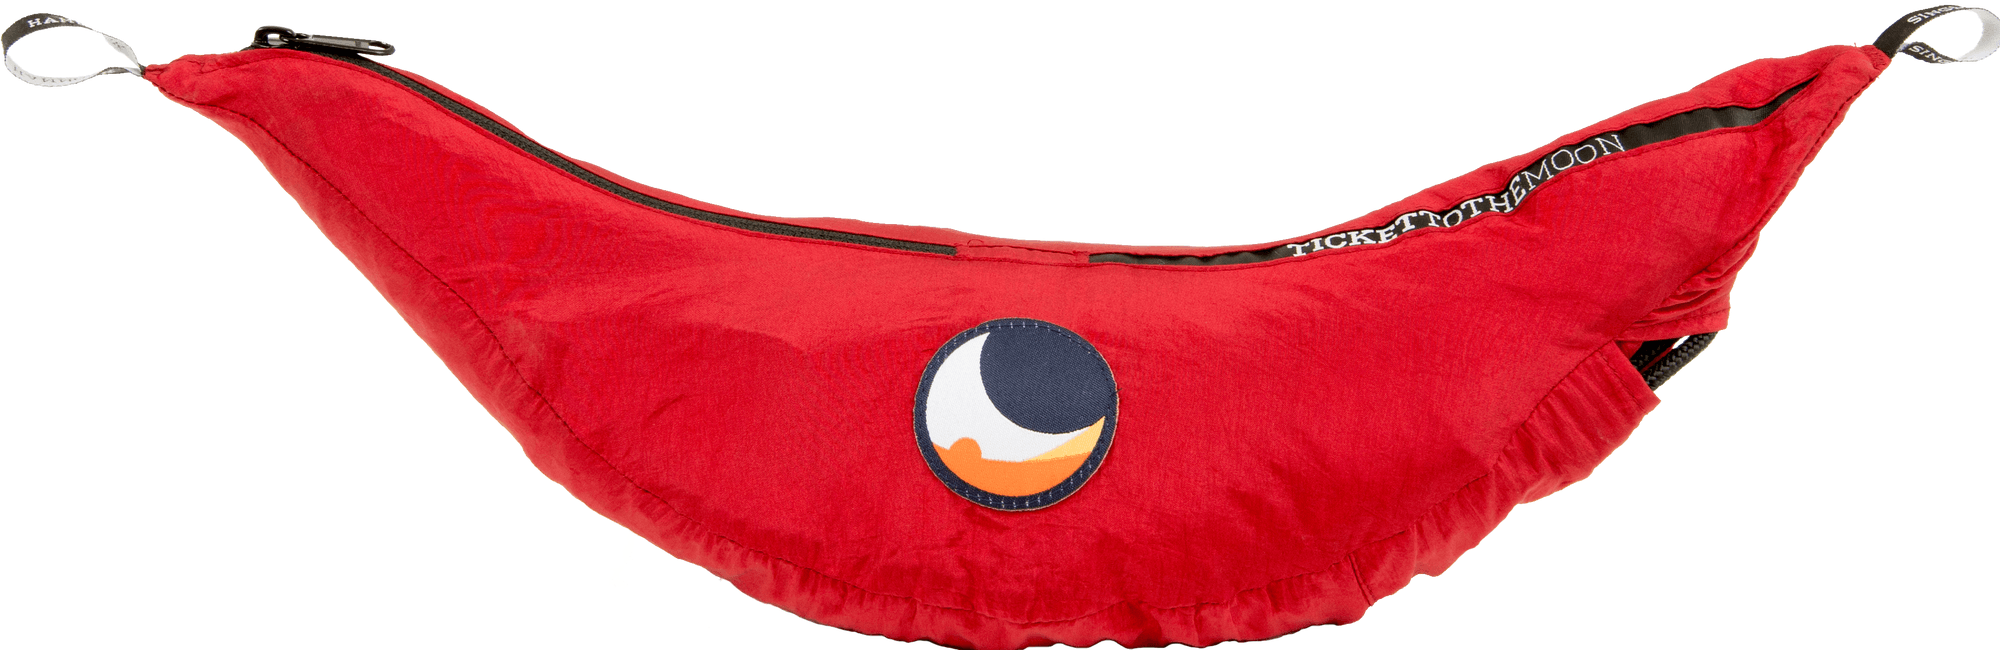 Ticket to the Moon Compact hangmat